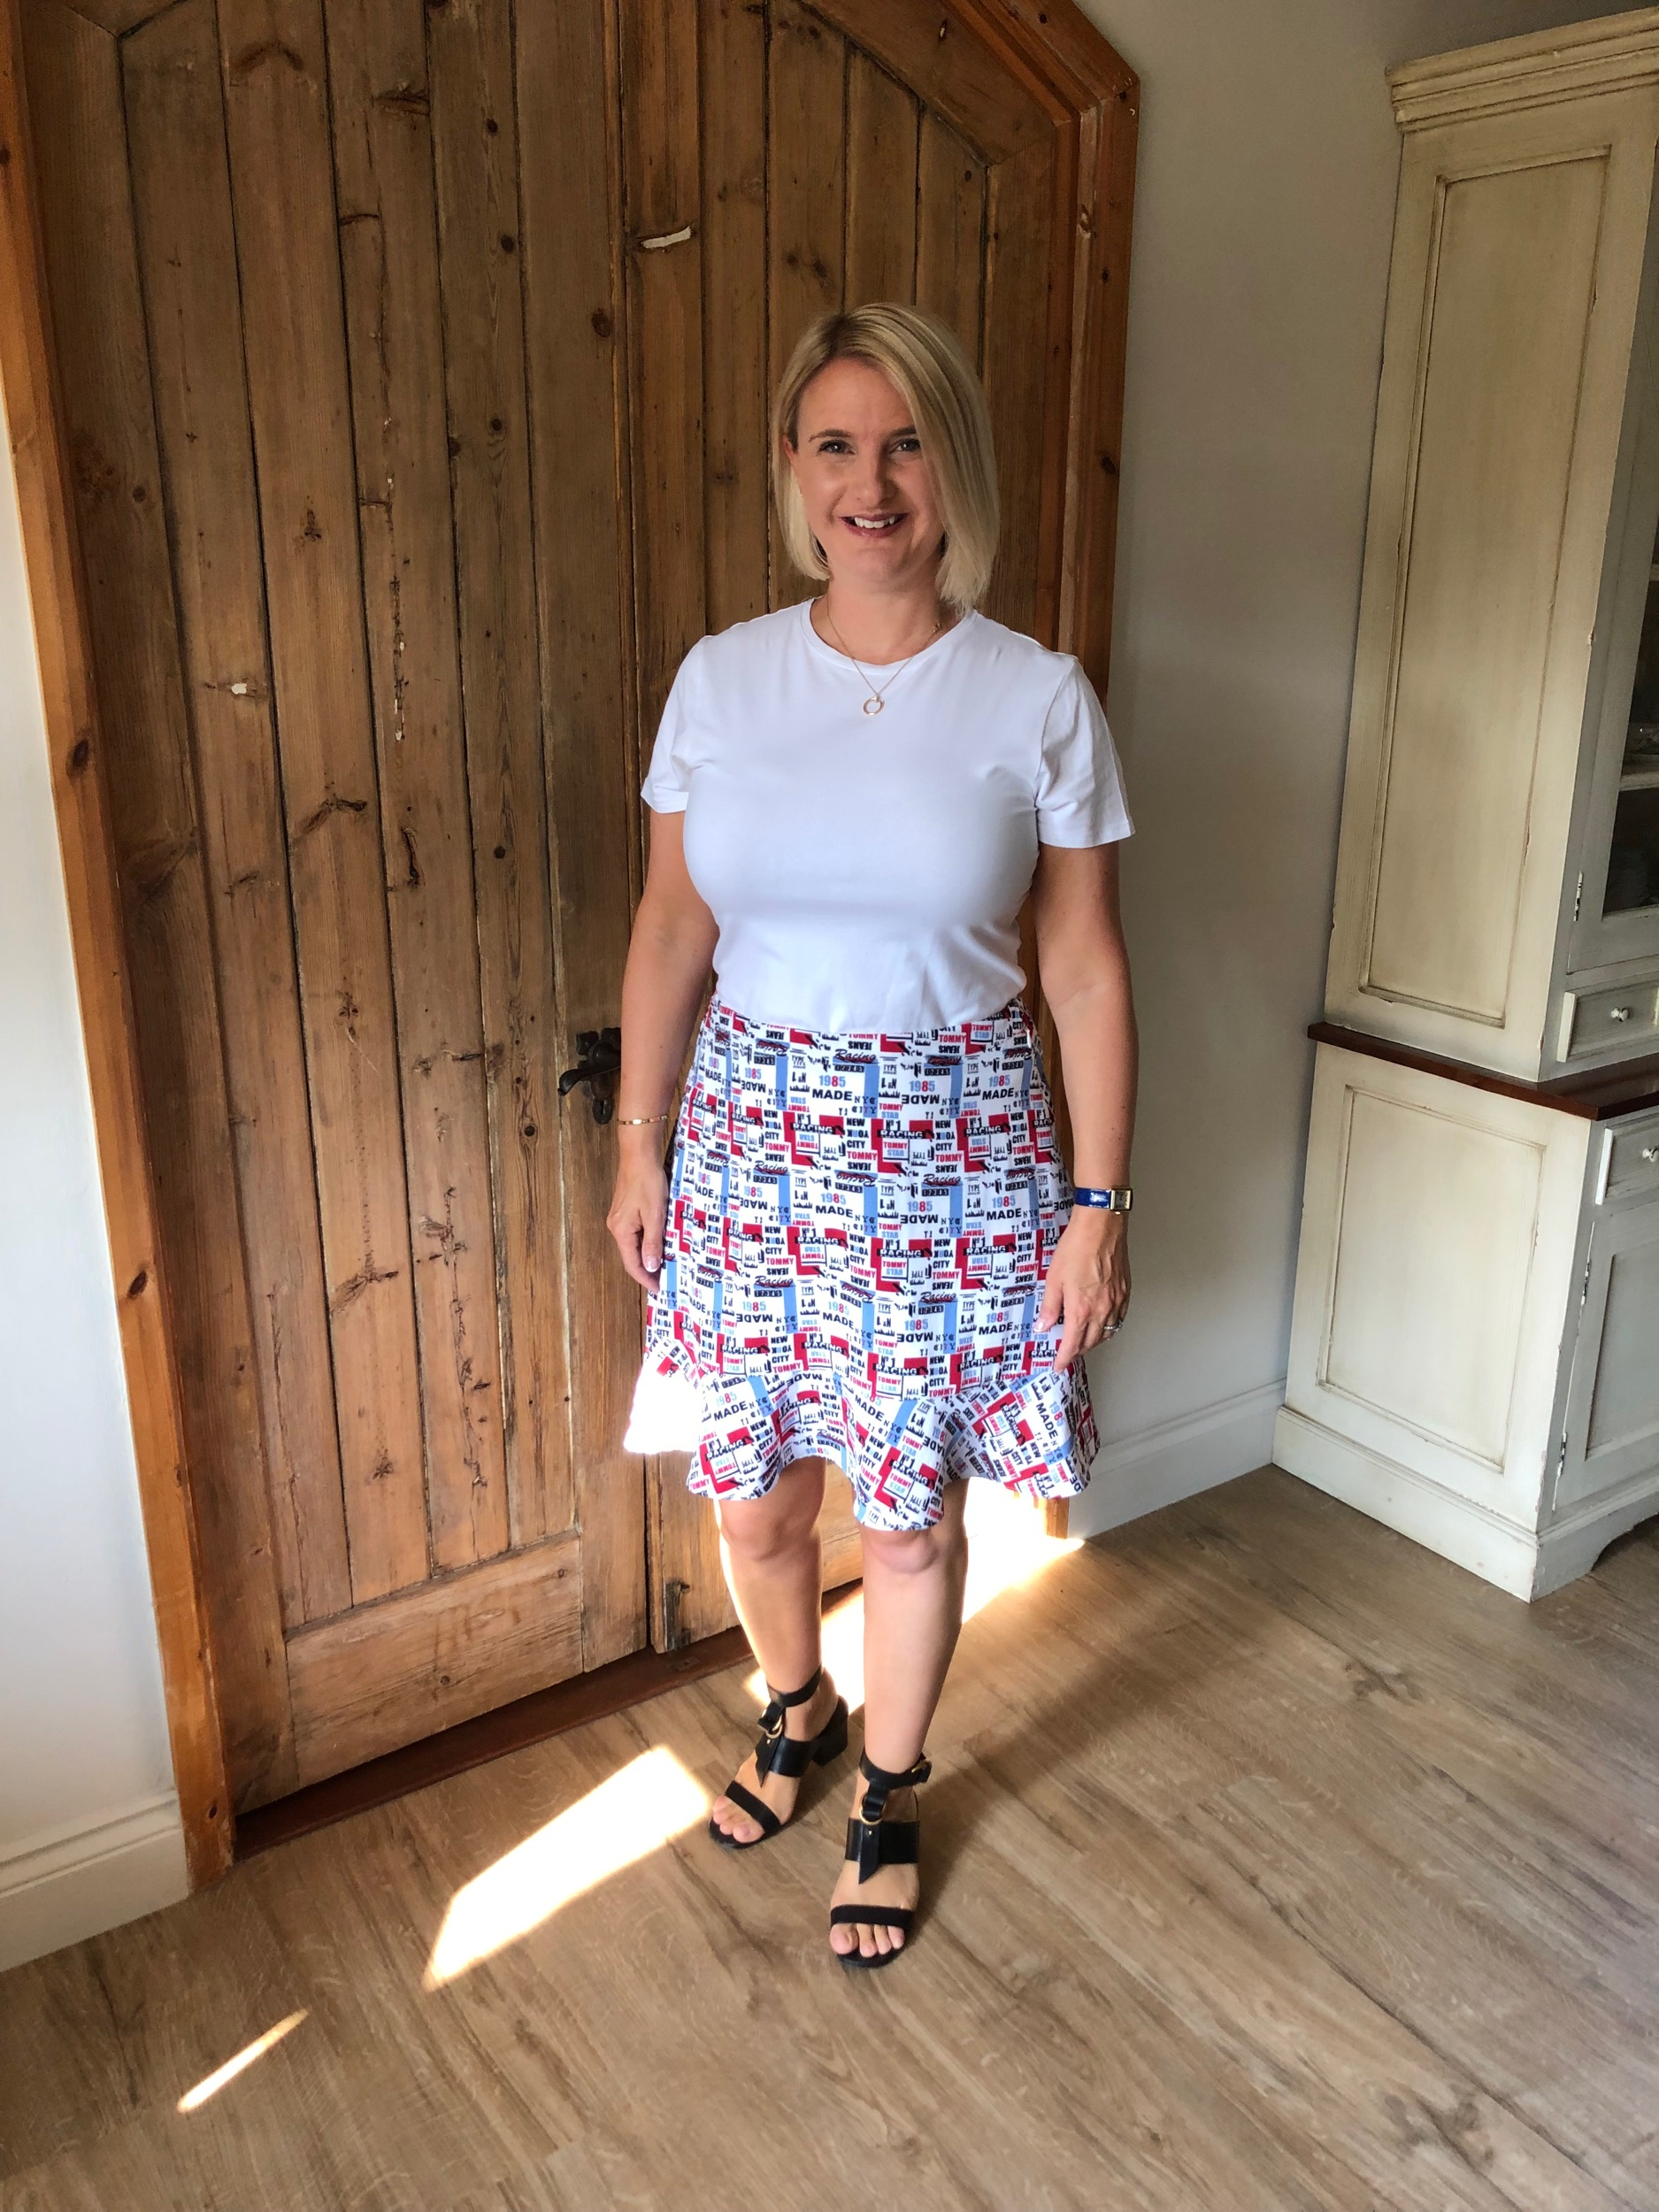 Top from M&S, Skirt from Tommy Hilfiger, Shoes from Chloe